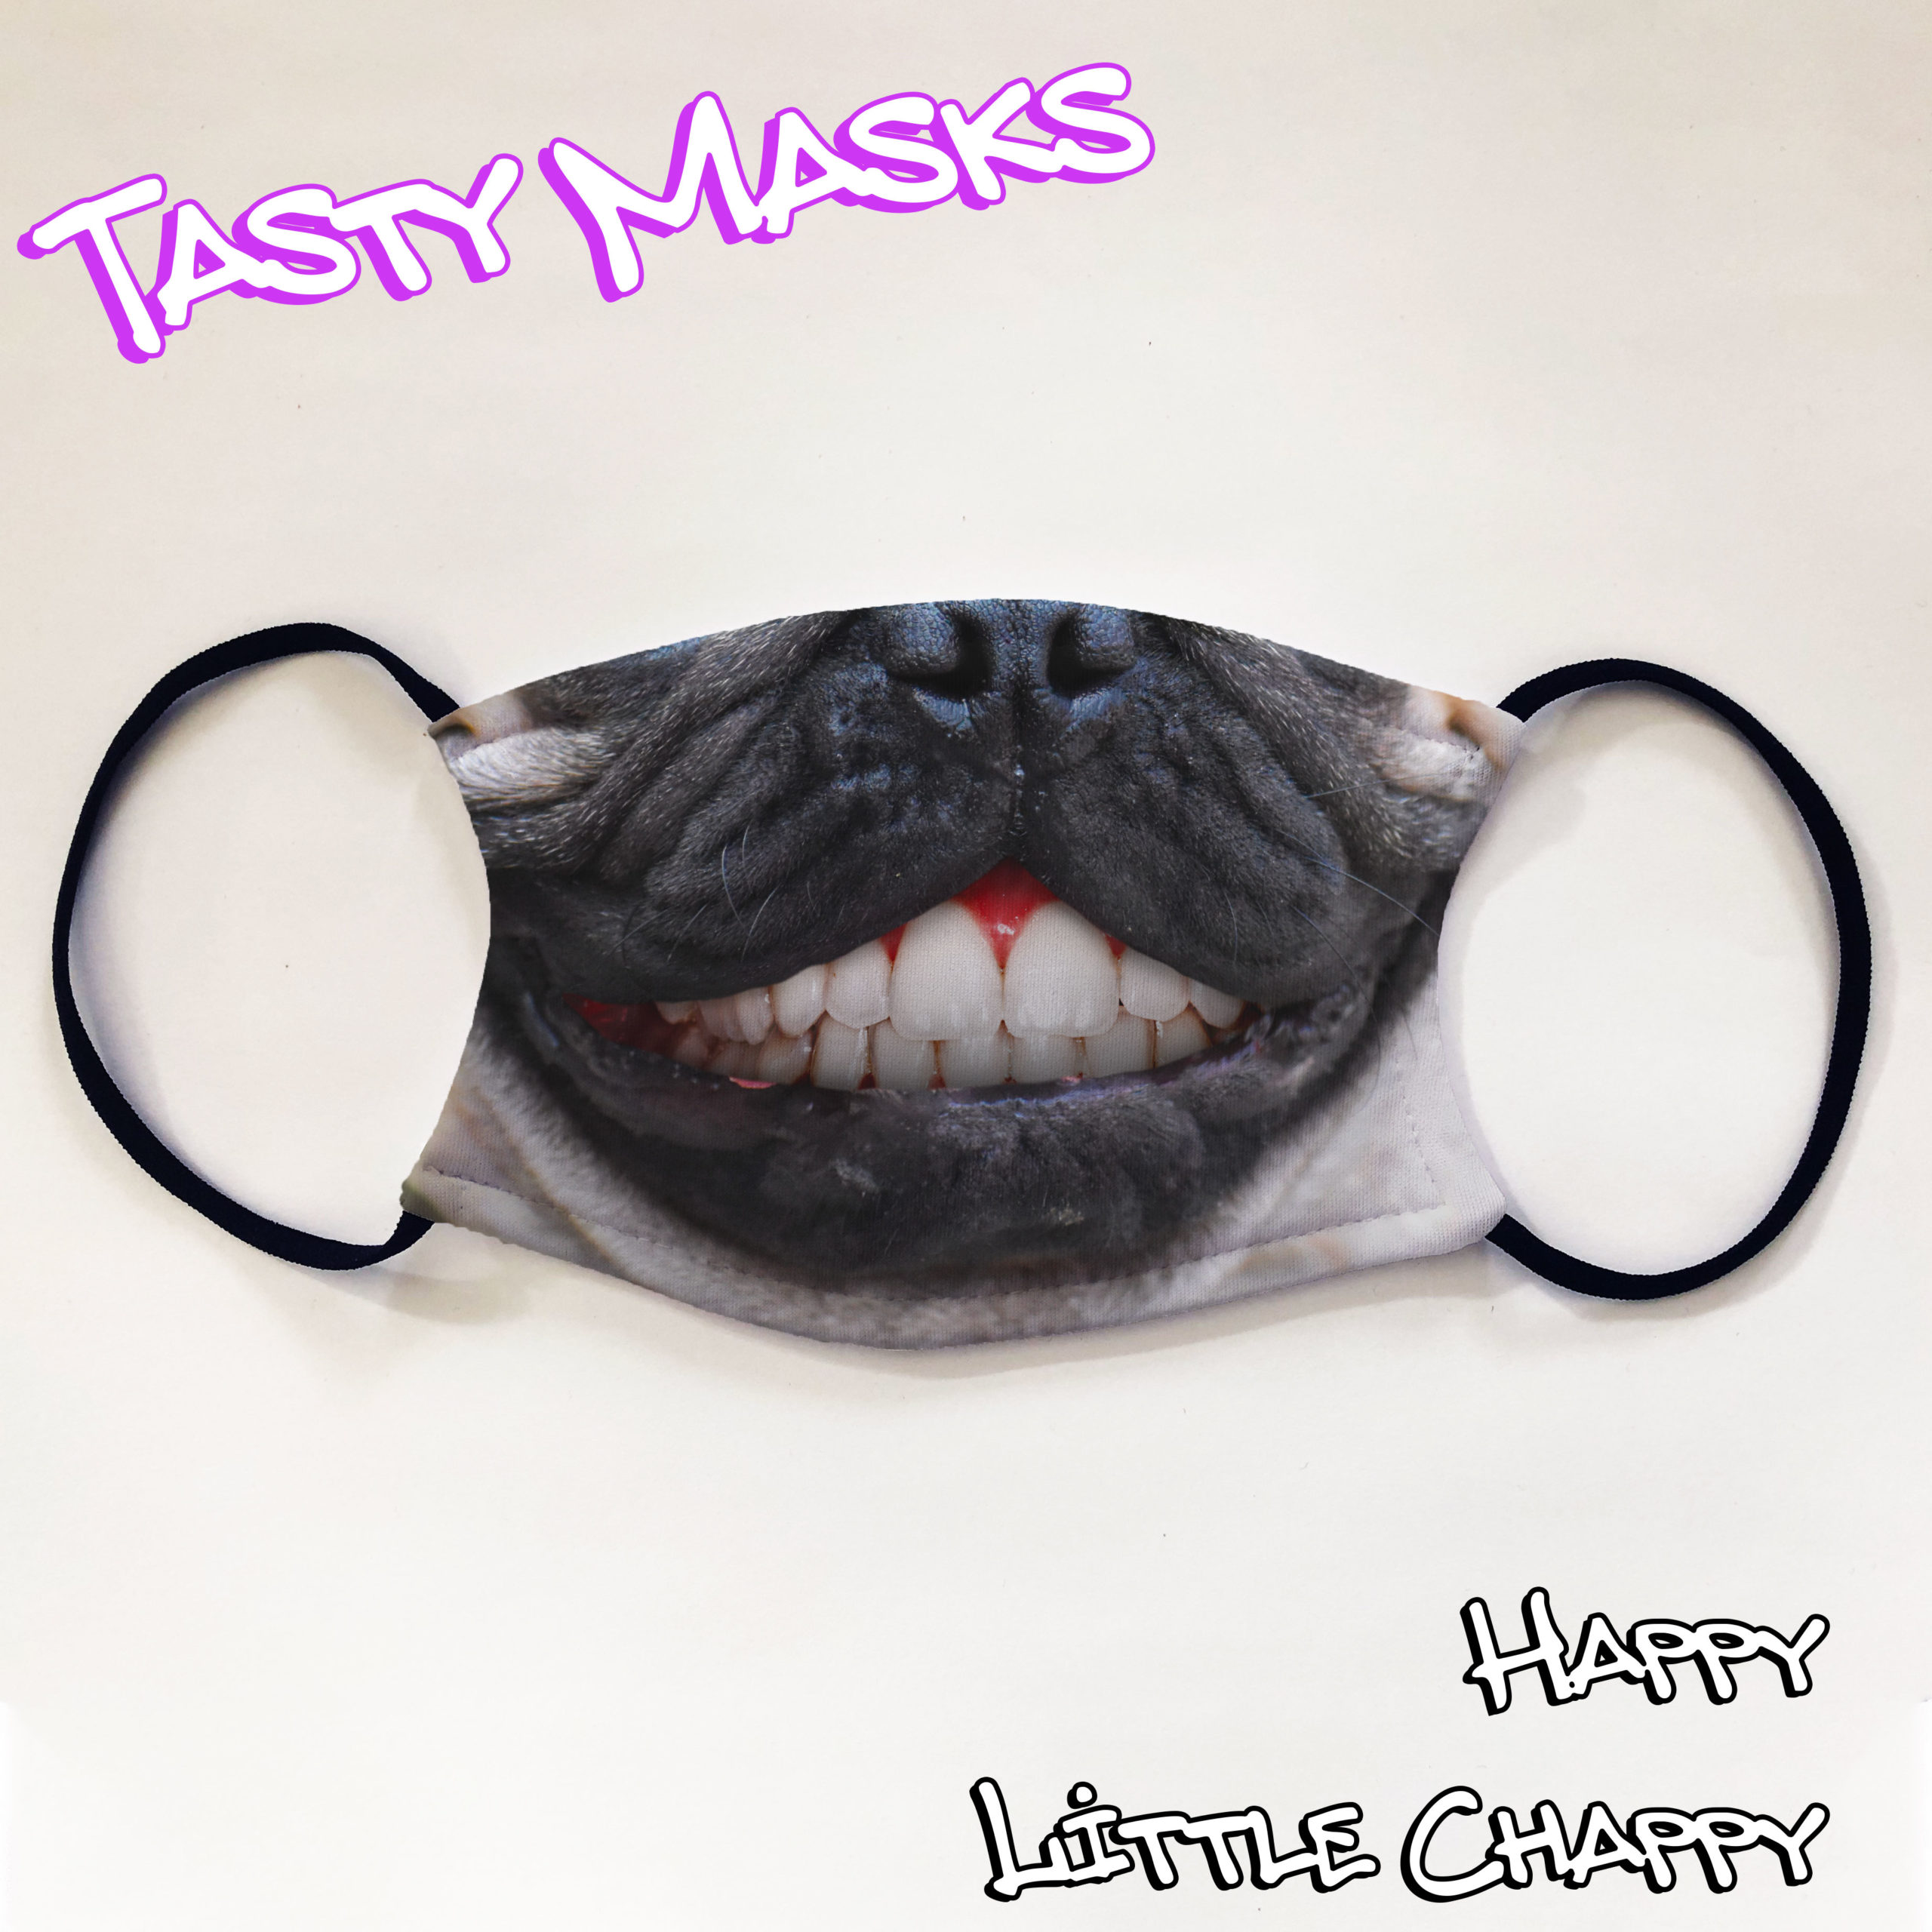 Facemask of pug dog nose and mouth face grinning